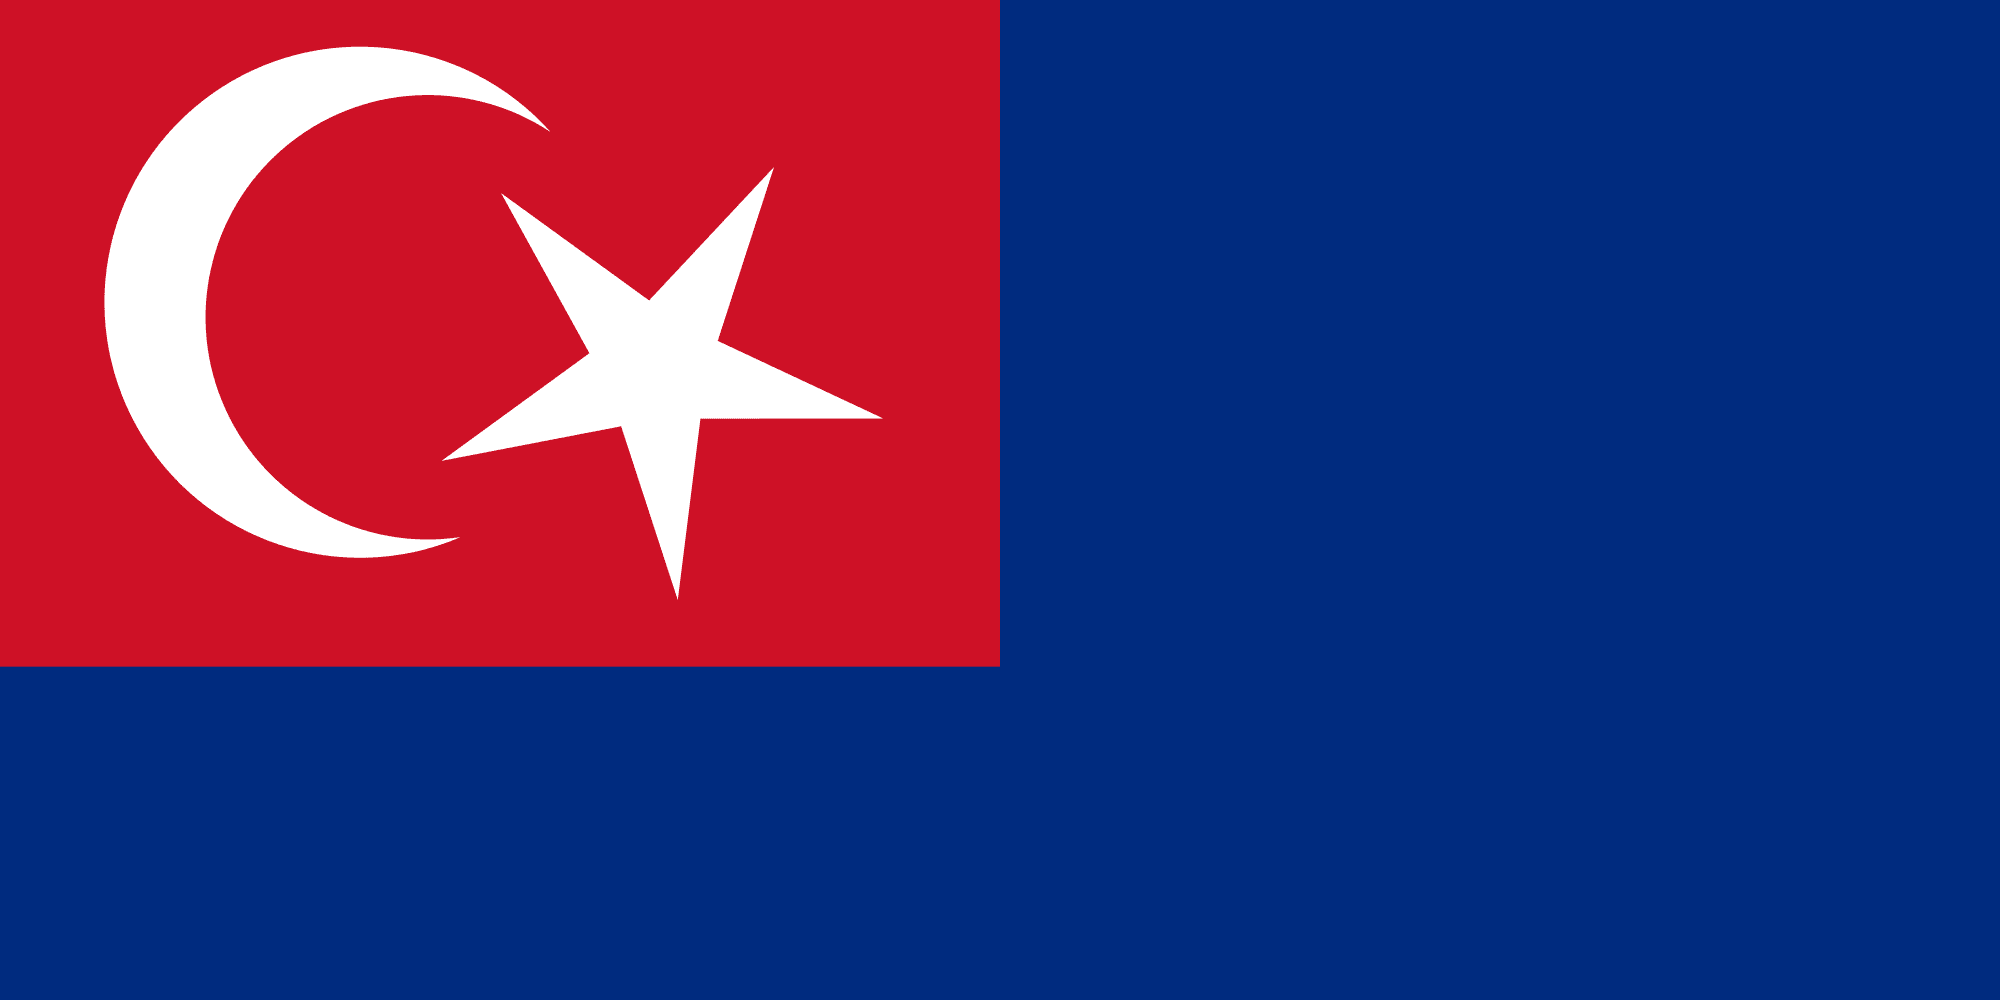 http://upload.wikimedia.org/wikipedia/commons/thumb/5/5a/Flag_of_Johor.svg/2000px-Flag_of_Johor.svg.png